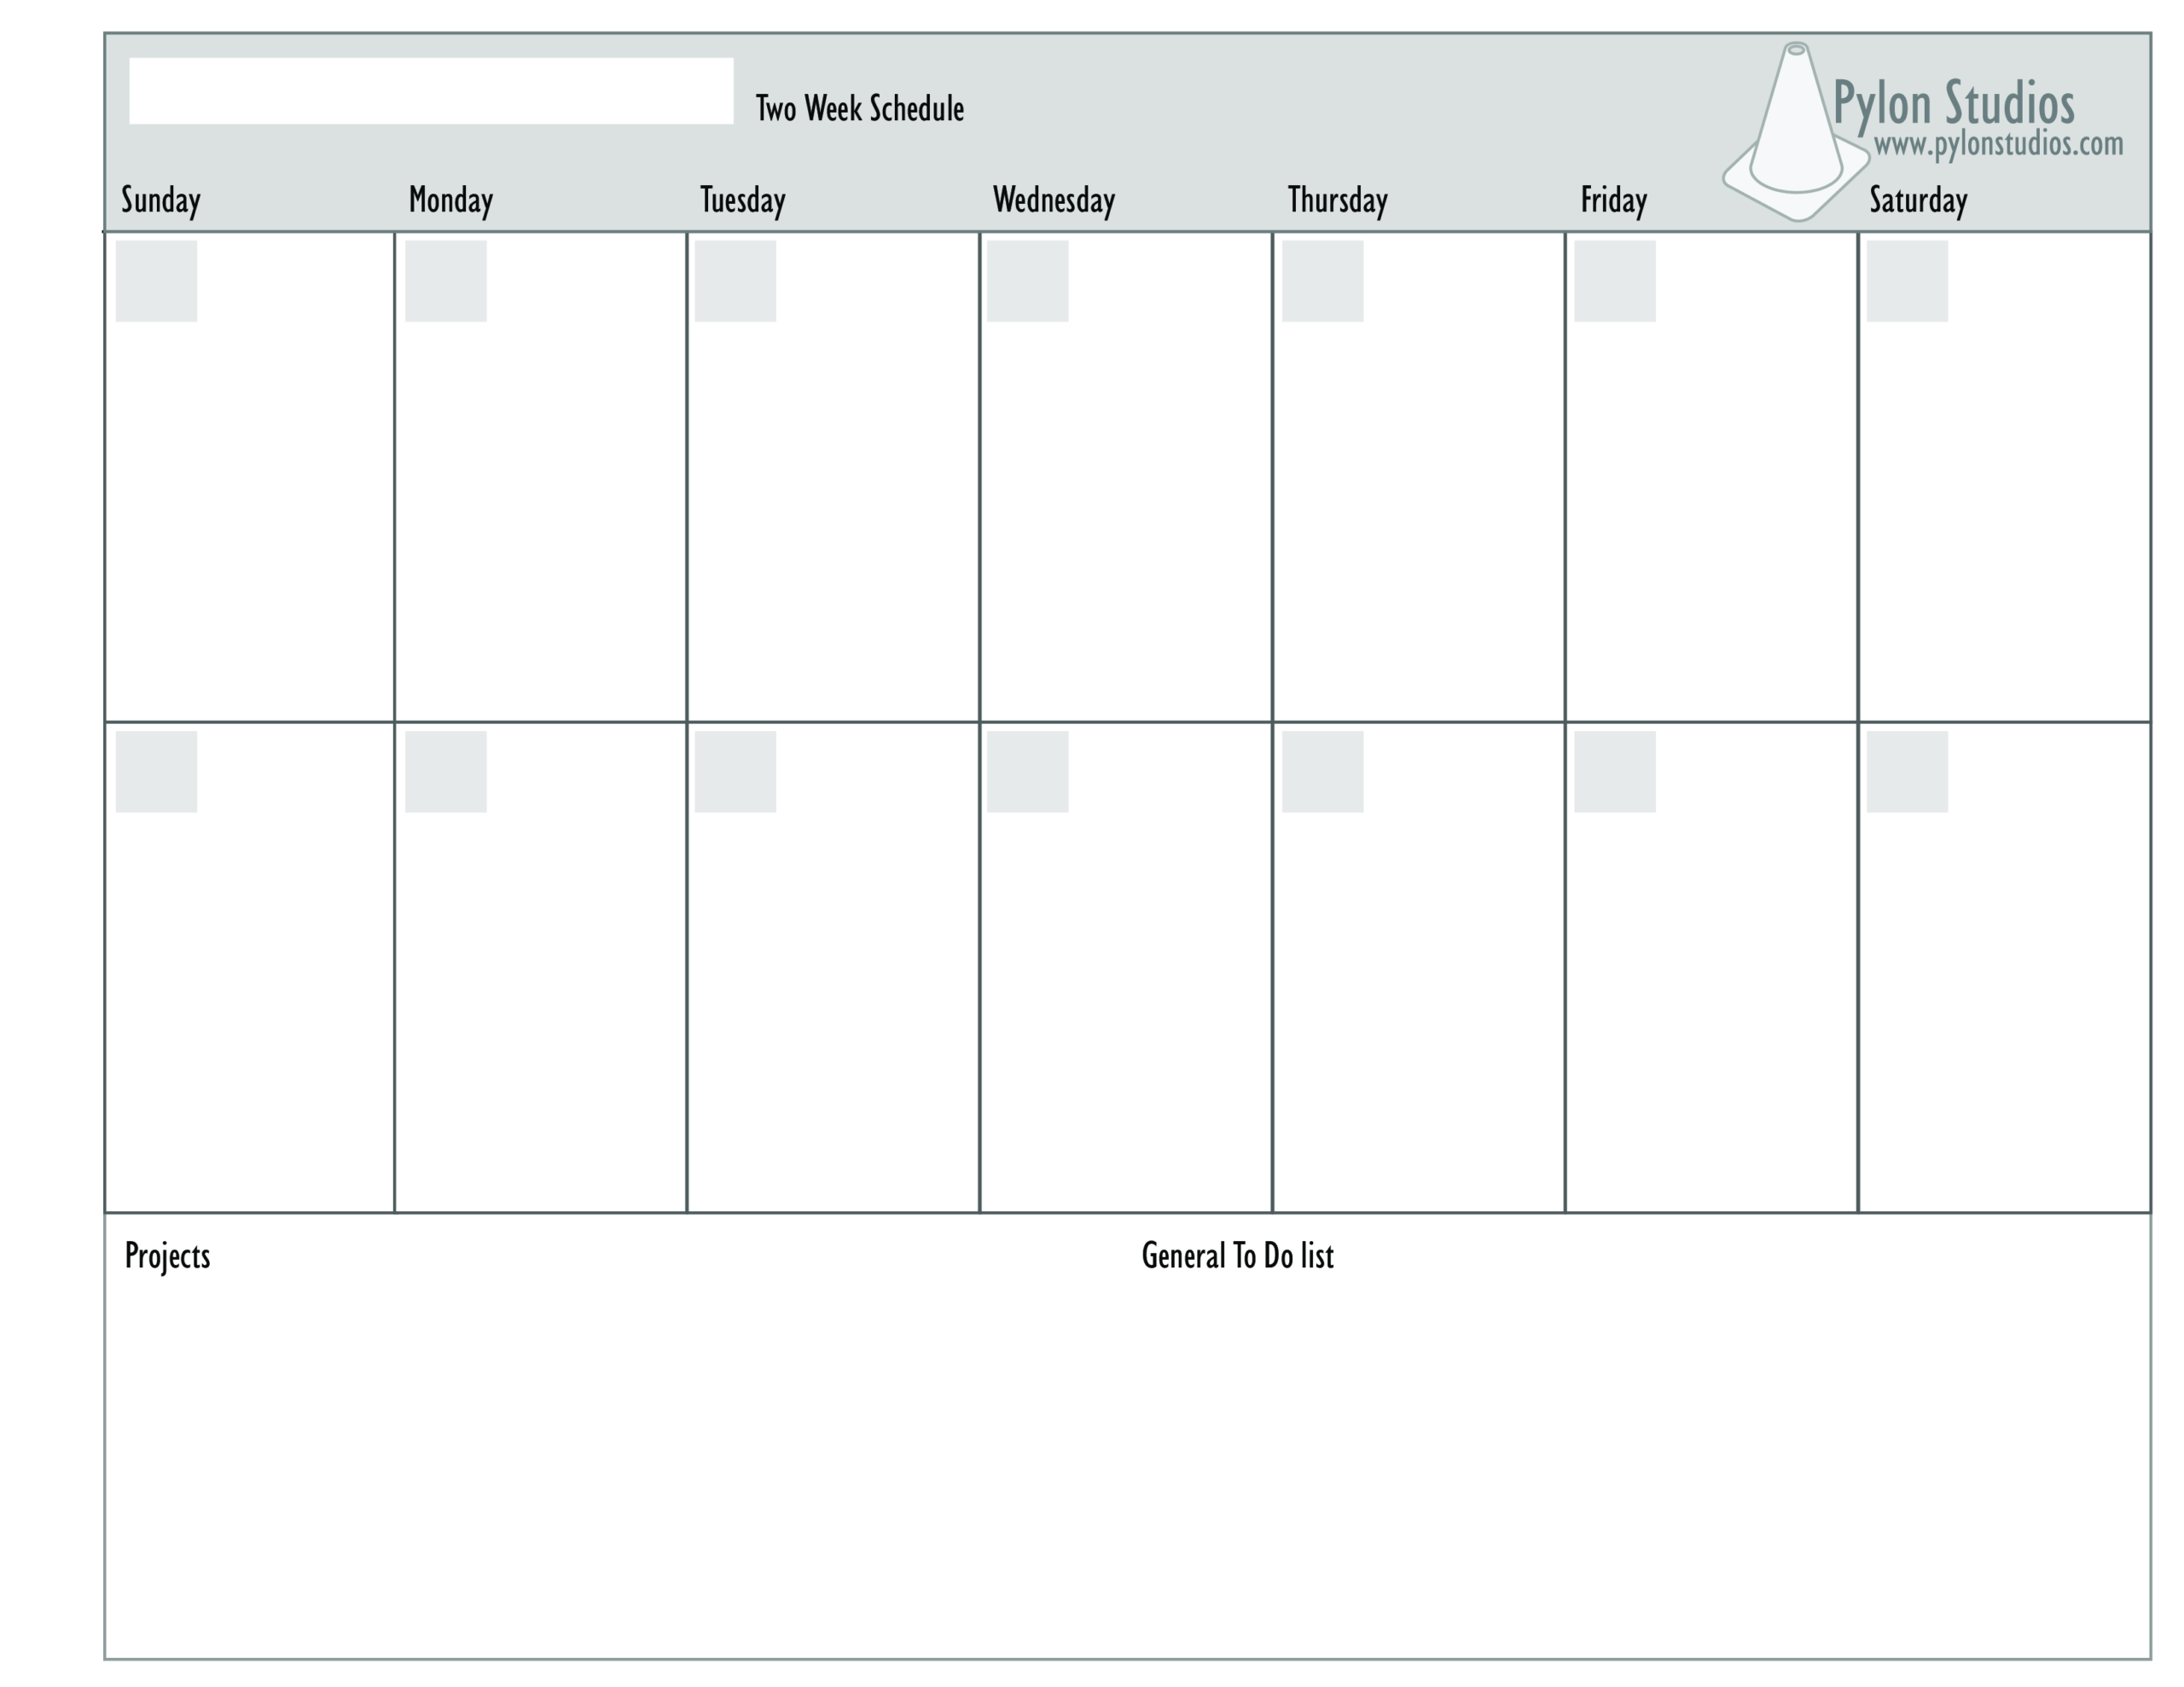 2 Week Calendar  How To Create A 2 Week Calendar? Download for 2 Week Calander